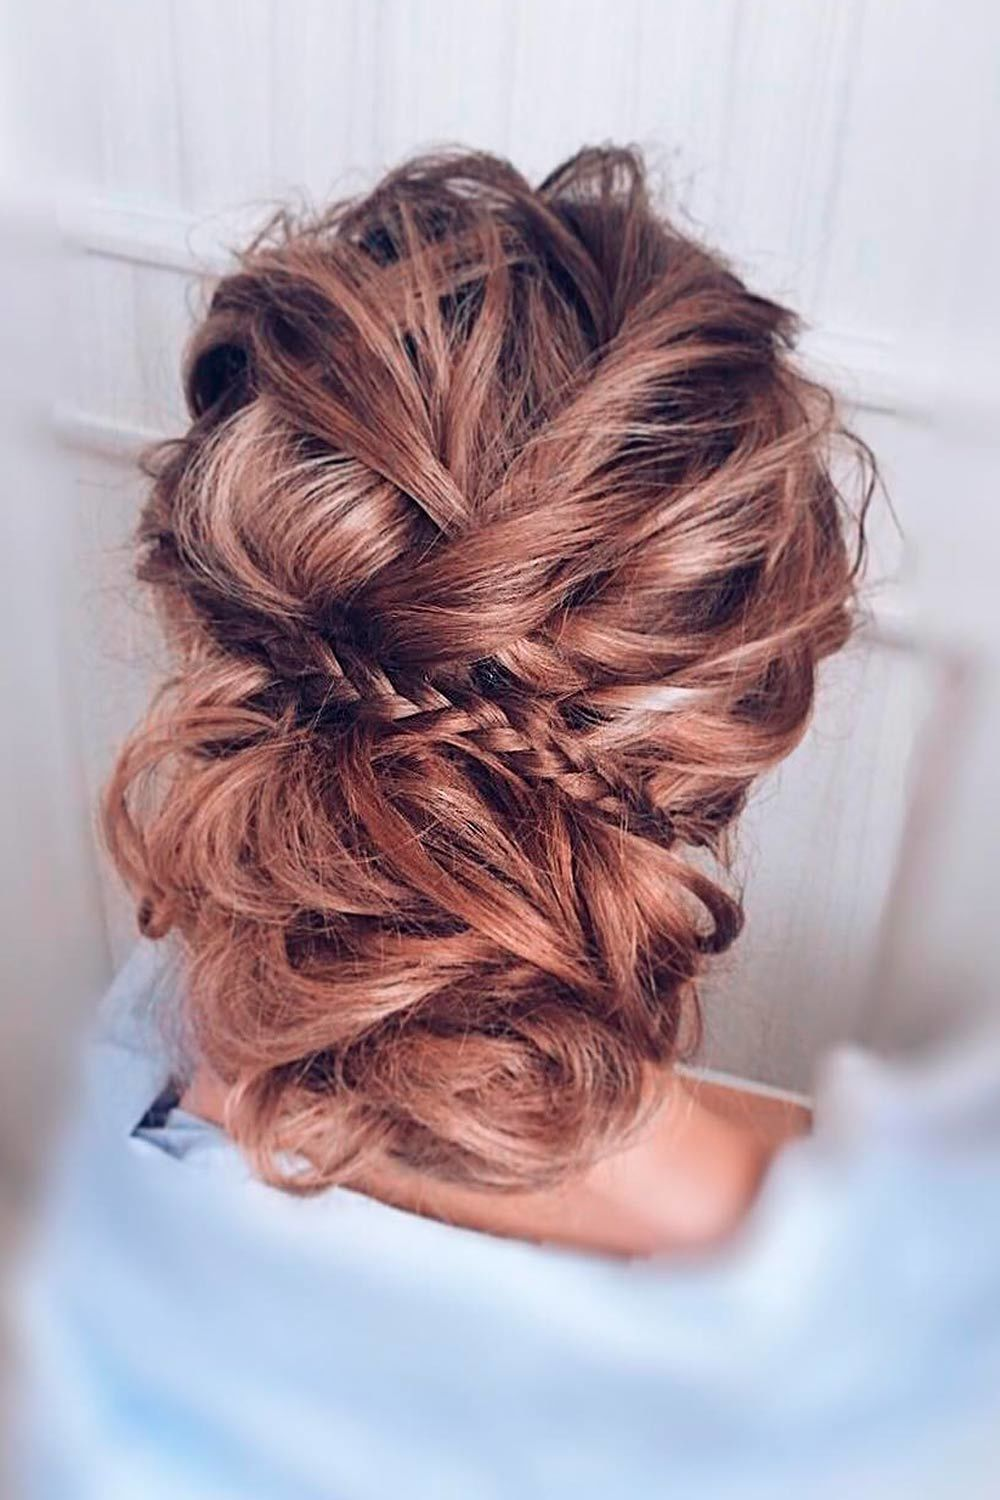 Low Updo Hairstyle For Long Hair